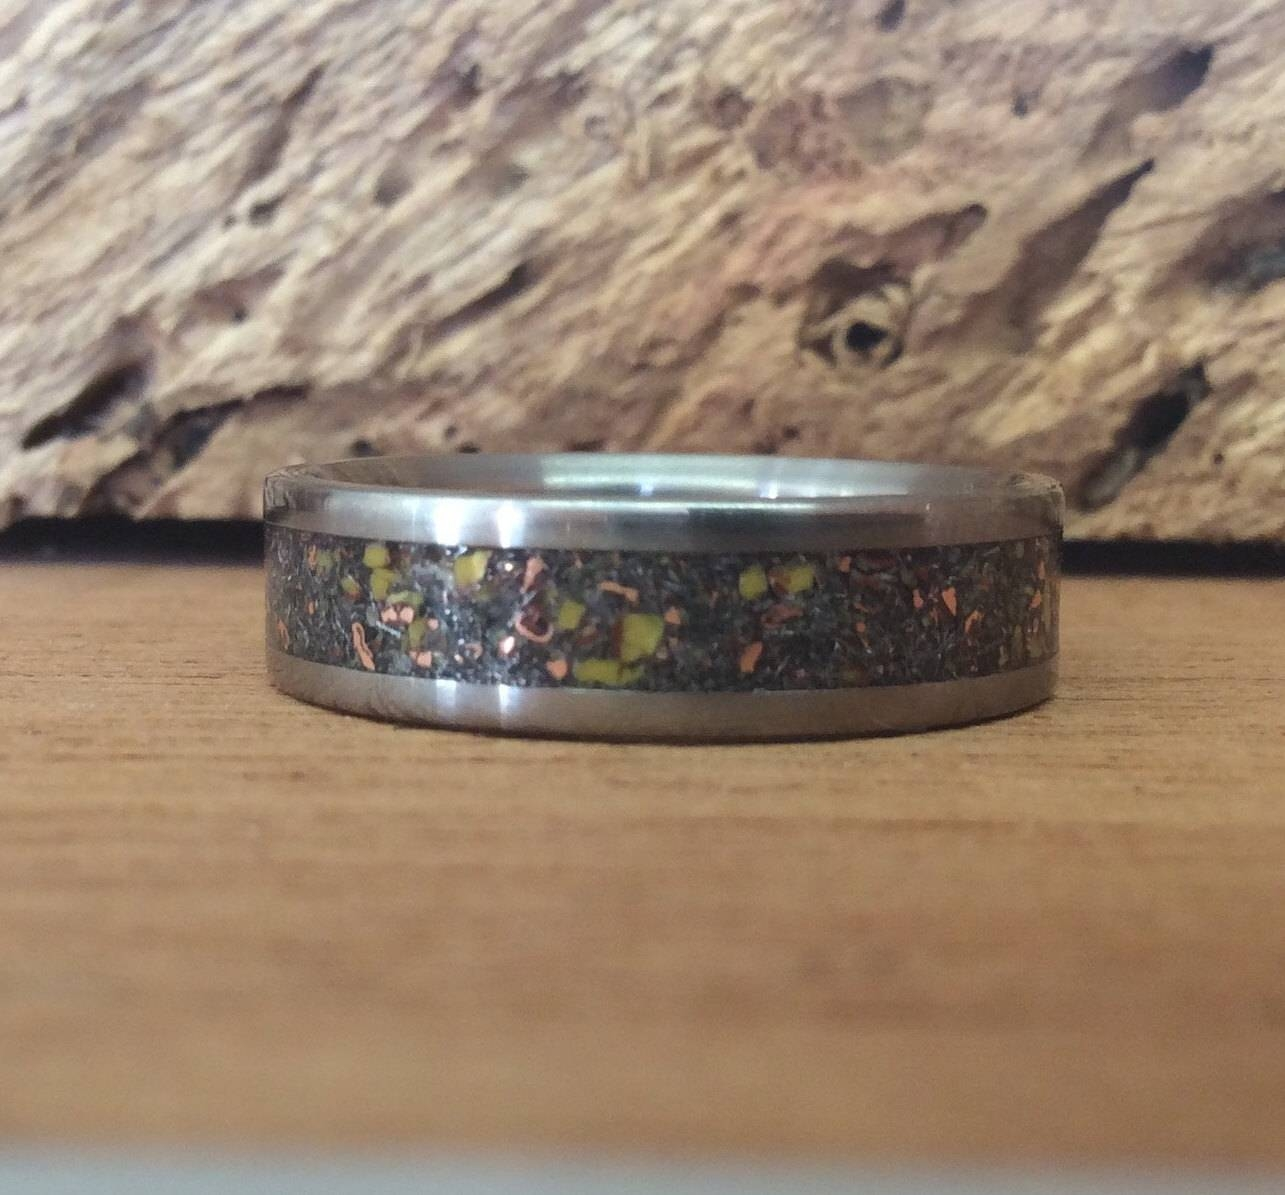 Titanium Ring, Meteorite Ring, Dinosaur Bone Ring, Mens Ring Intended For Handmade Mens Wedding Rings (View 11 of 15)